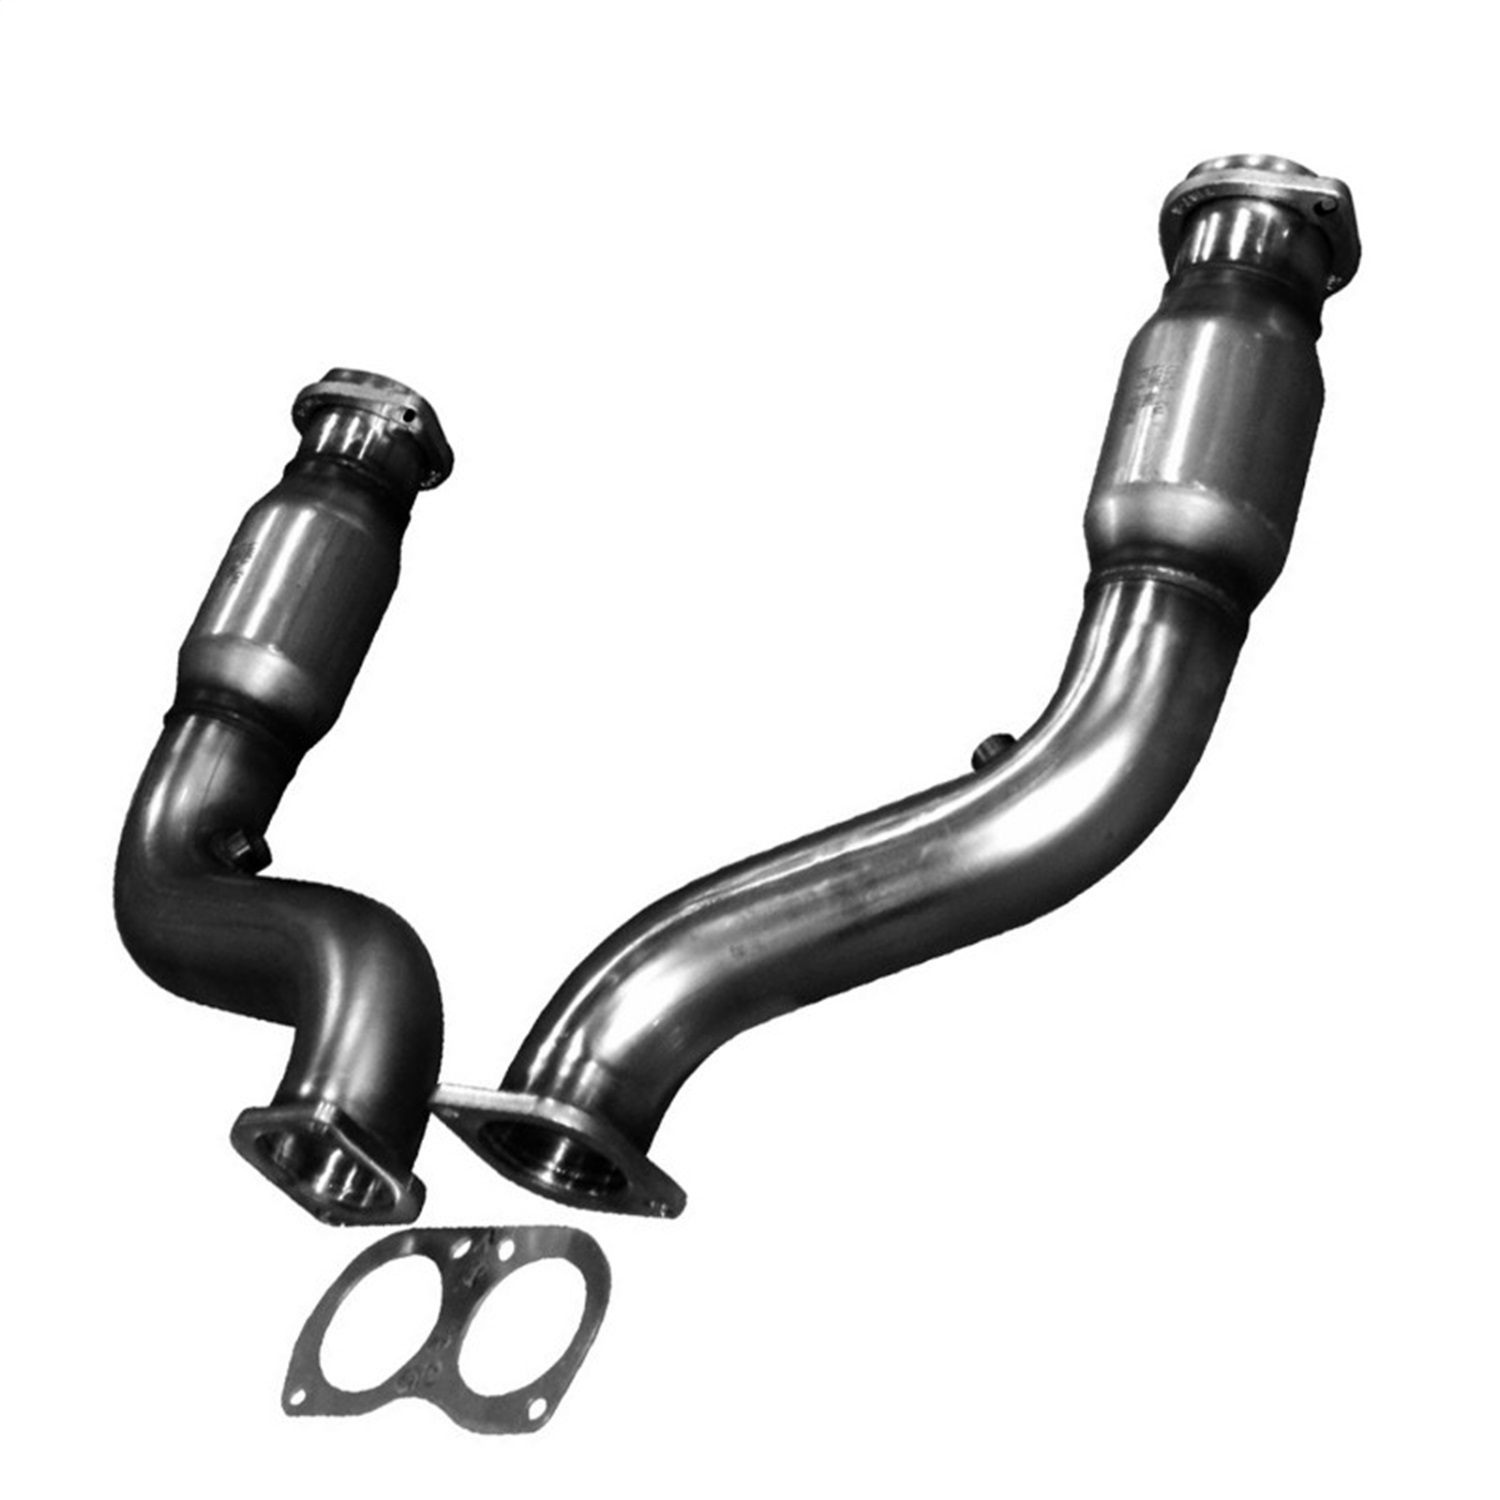 Kooks Custom Headers 24123200 Connection Pipes Fits 05-06 GTO